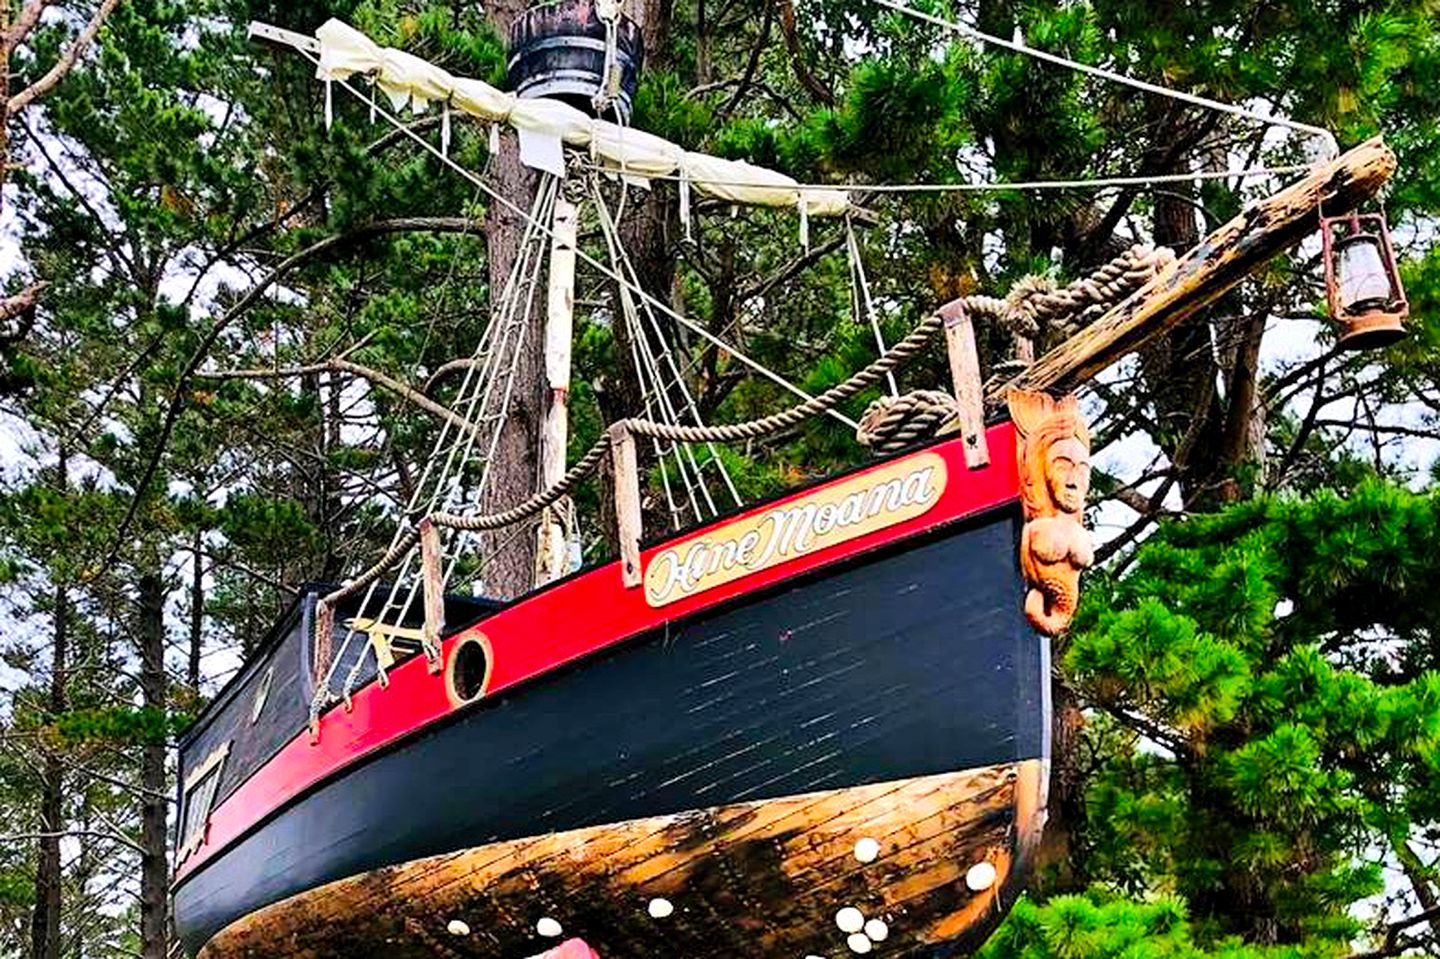 This incredible pirate ship is perfect for glamping near Auckland. Holiday houses have never been so unique!